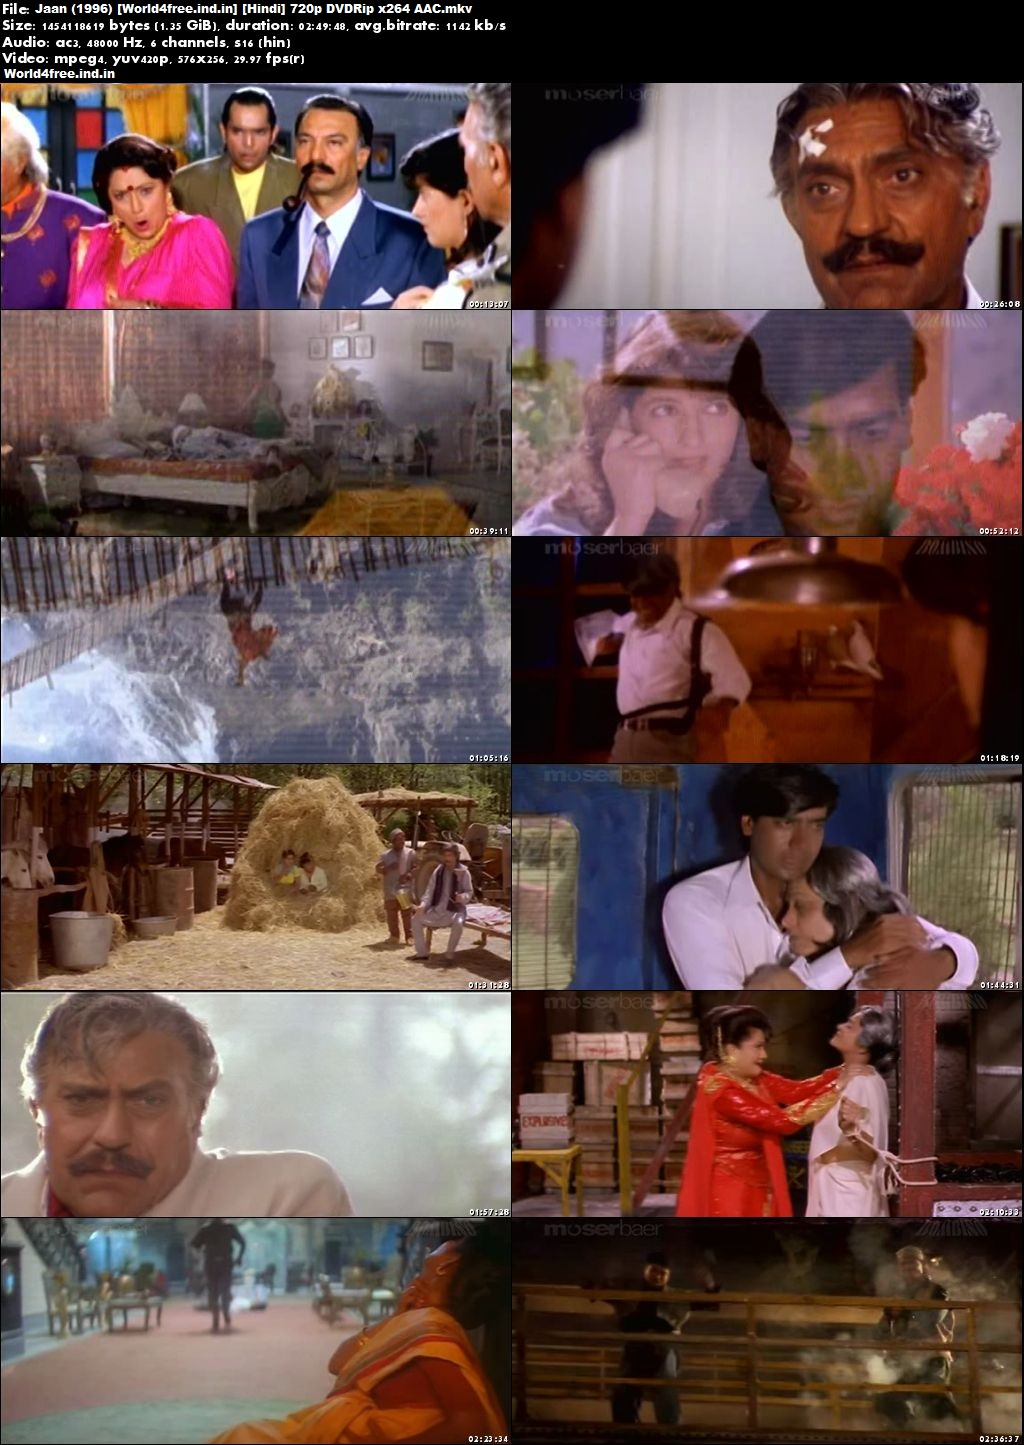 Jaan 1996 world4free.ind.in Full Bollywood Hindi Movie Download DVDRip 720p